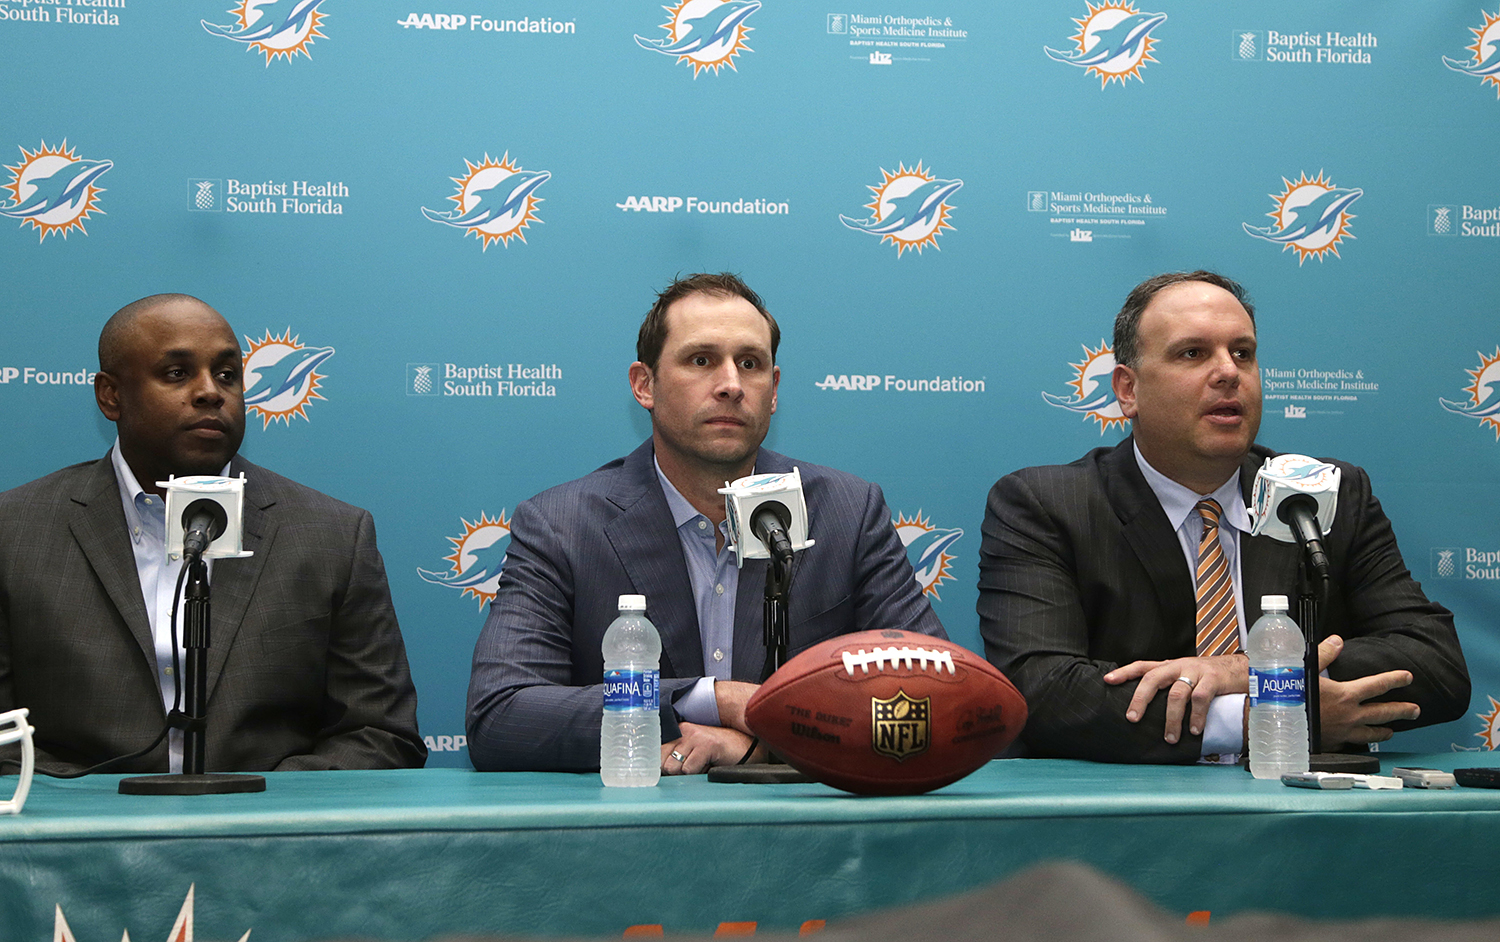 We will see it the Dolphins brain trust selected the right players